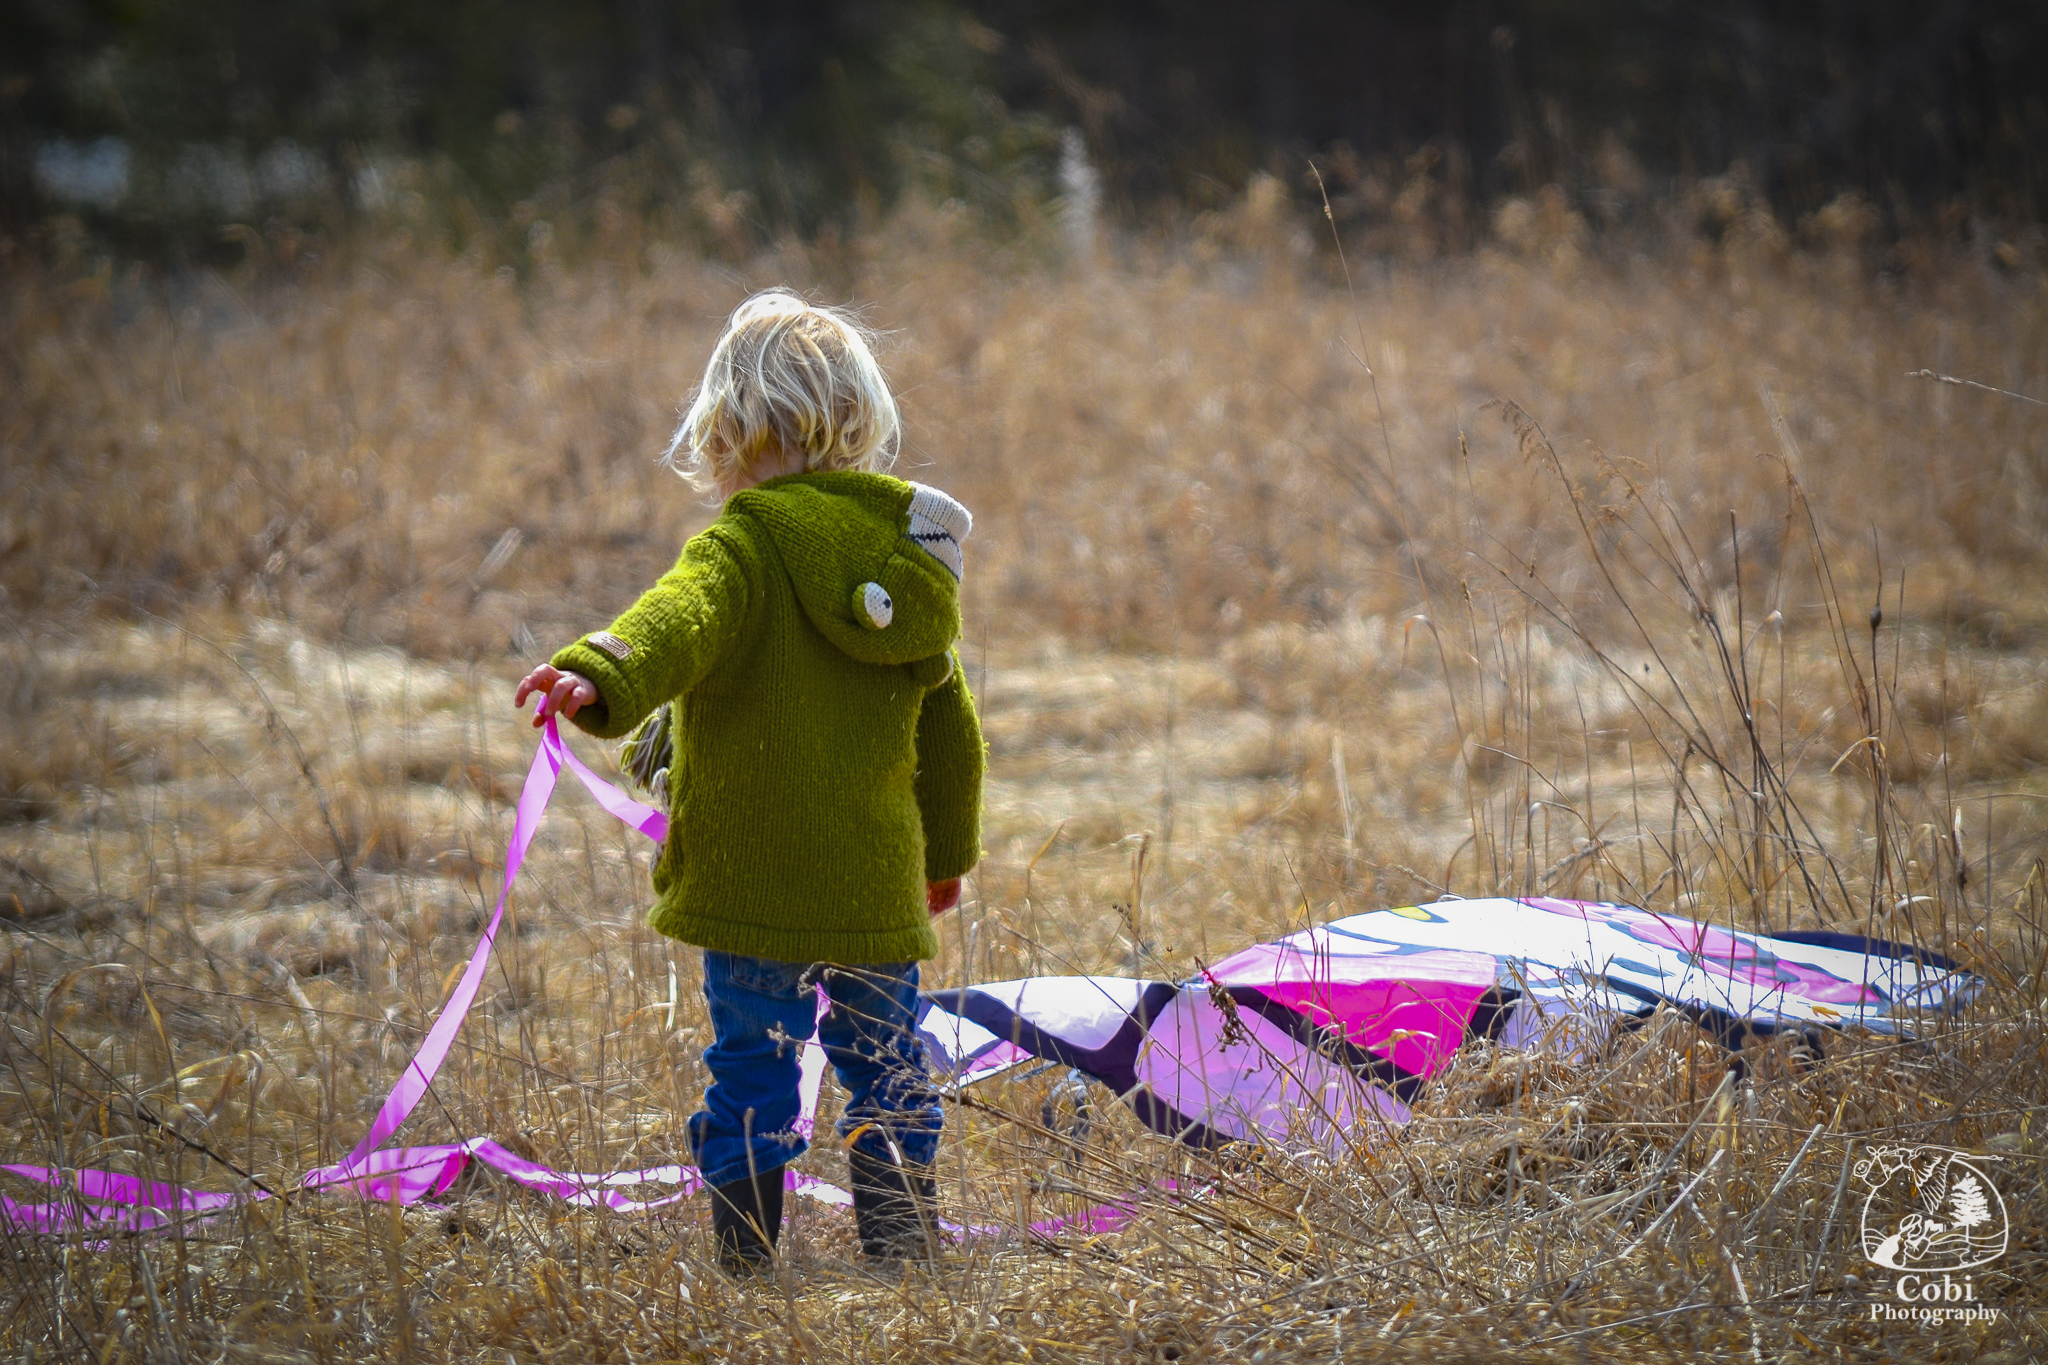 Spring. The perfect time to fly a kite!